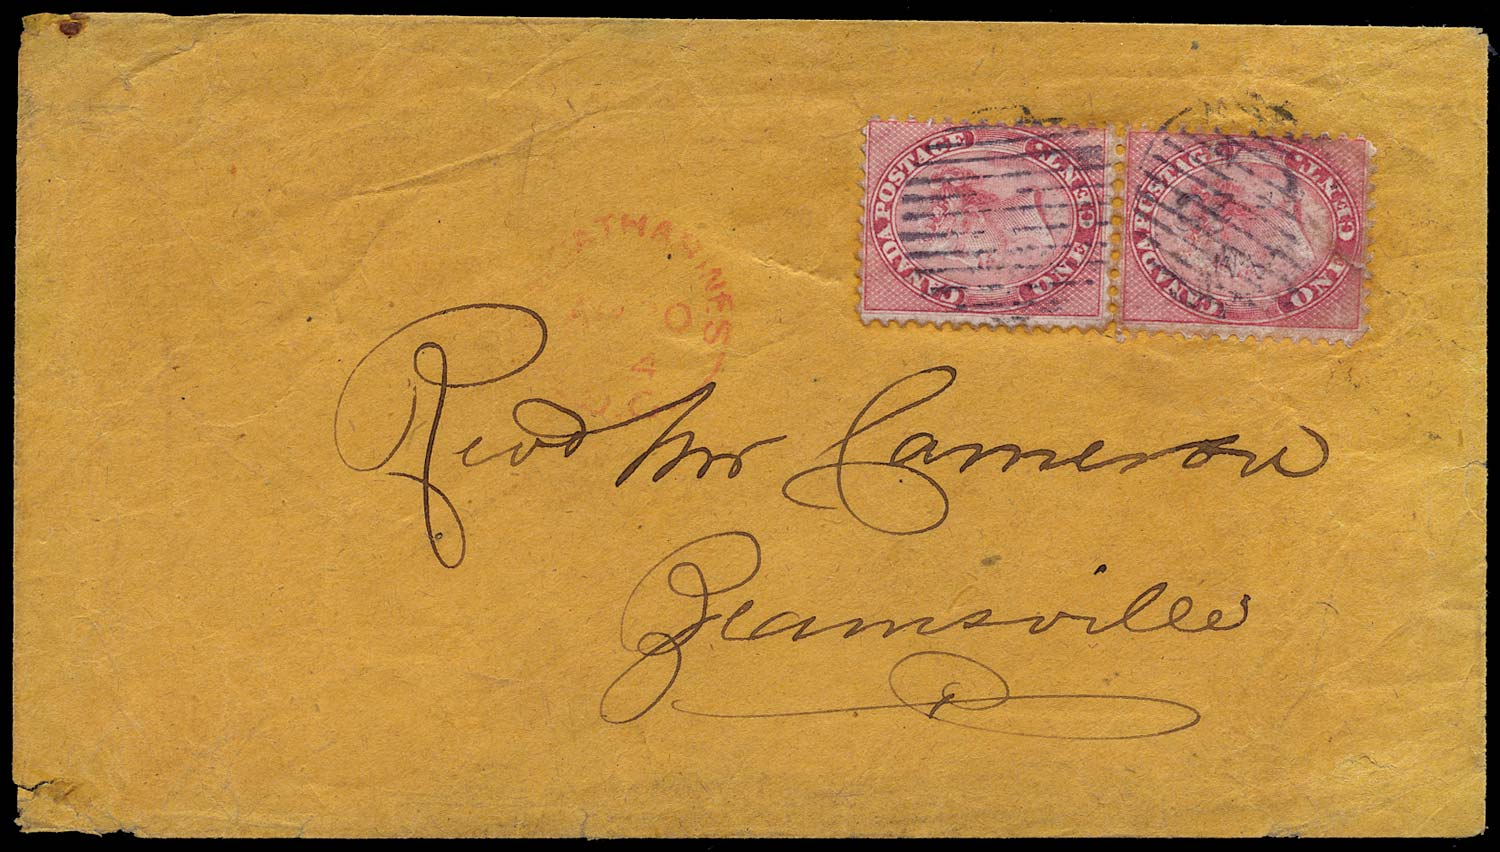 CANADA 1864  SG30 Cover from St Catherines to Beamsville at 2c rate